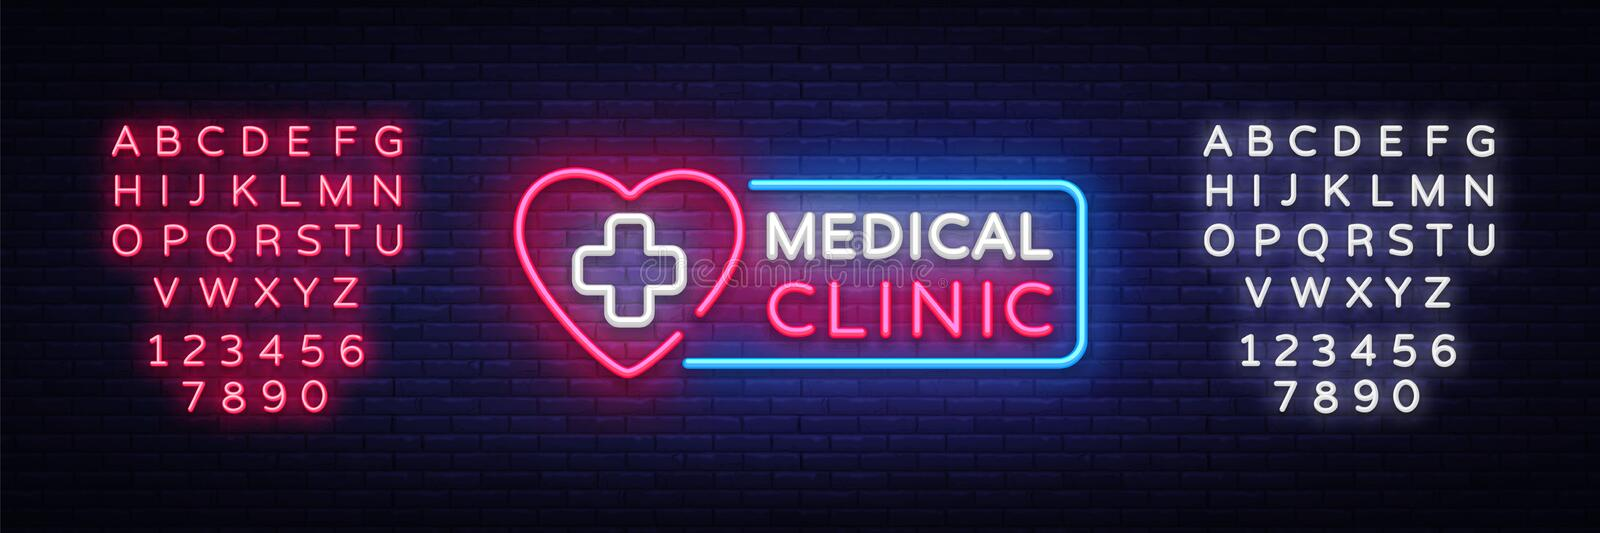 Medical Clinic neon signboard vector. Medical neon glowing symbol, Light Banner, neon icon, design element. Vector. Illustration. Editing text neon sign royalty free illustration